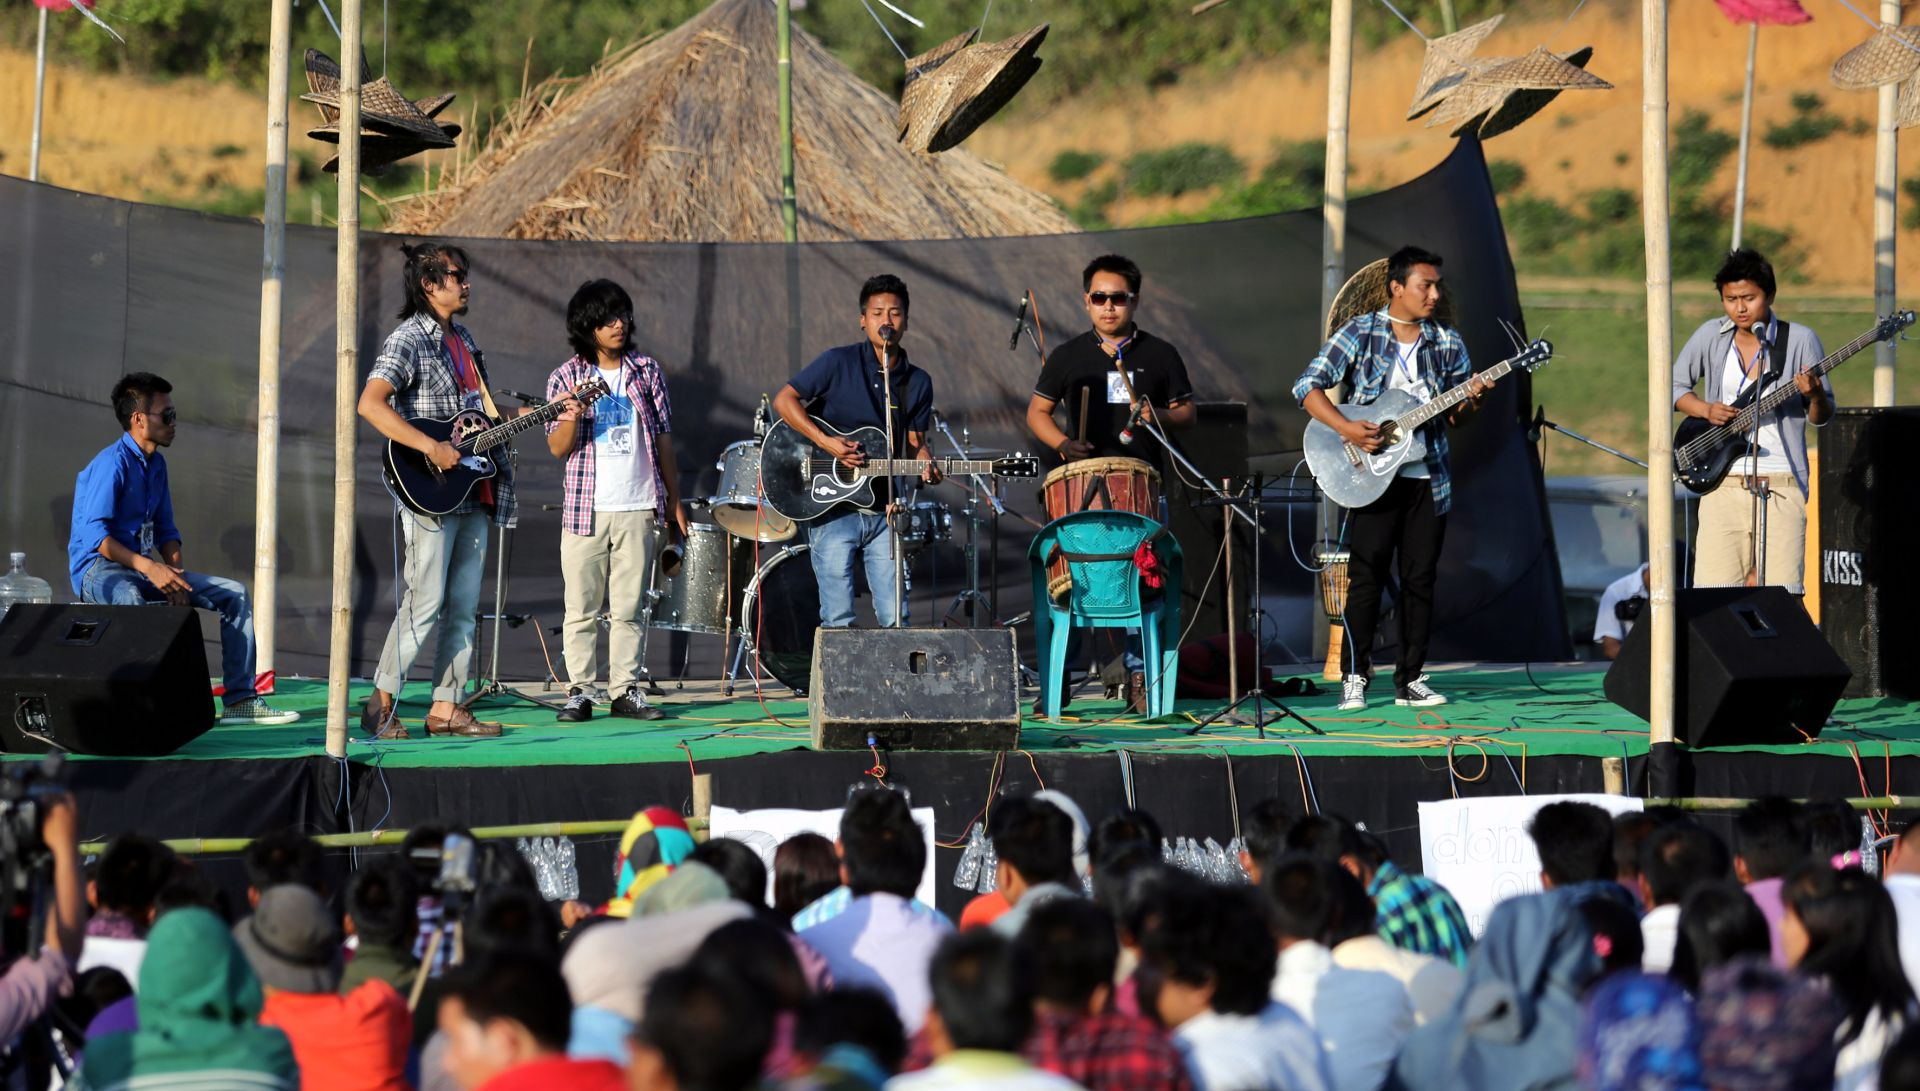 Manipur Music and Arts festival - Where have all the flowers gone?